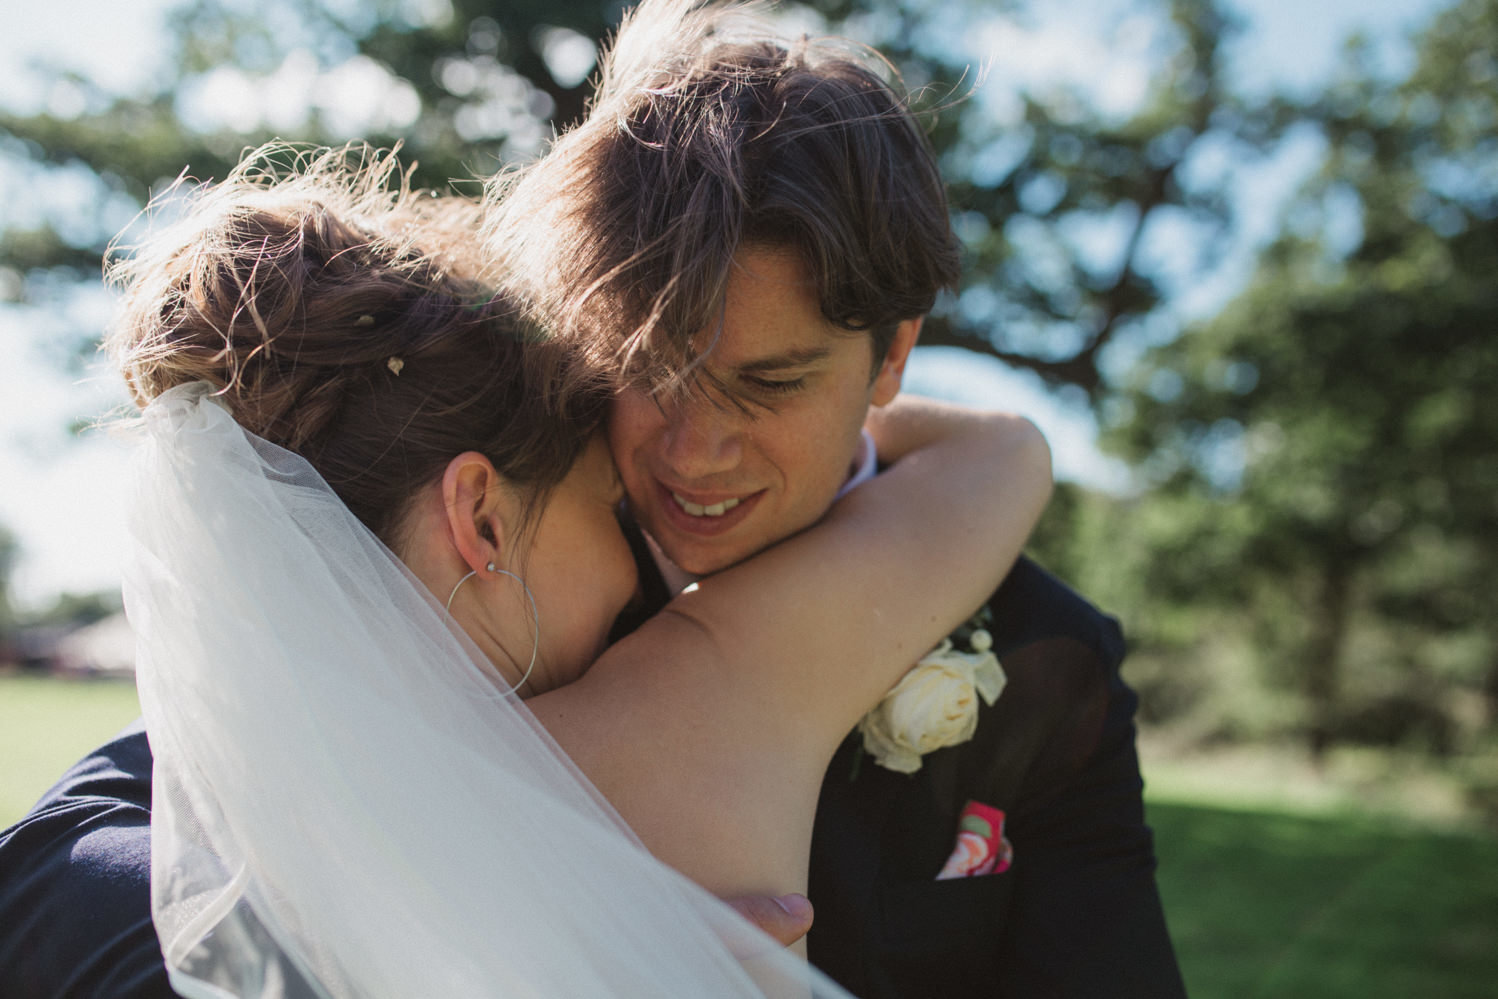 Intimate natural cuddle between newlywed bride and groom at Blackthorpe Barn in Suffolk after their wedding ceremony